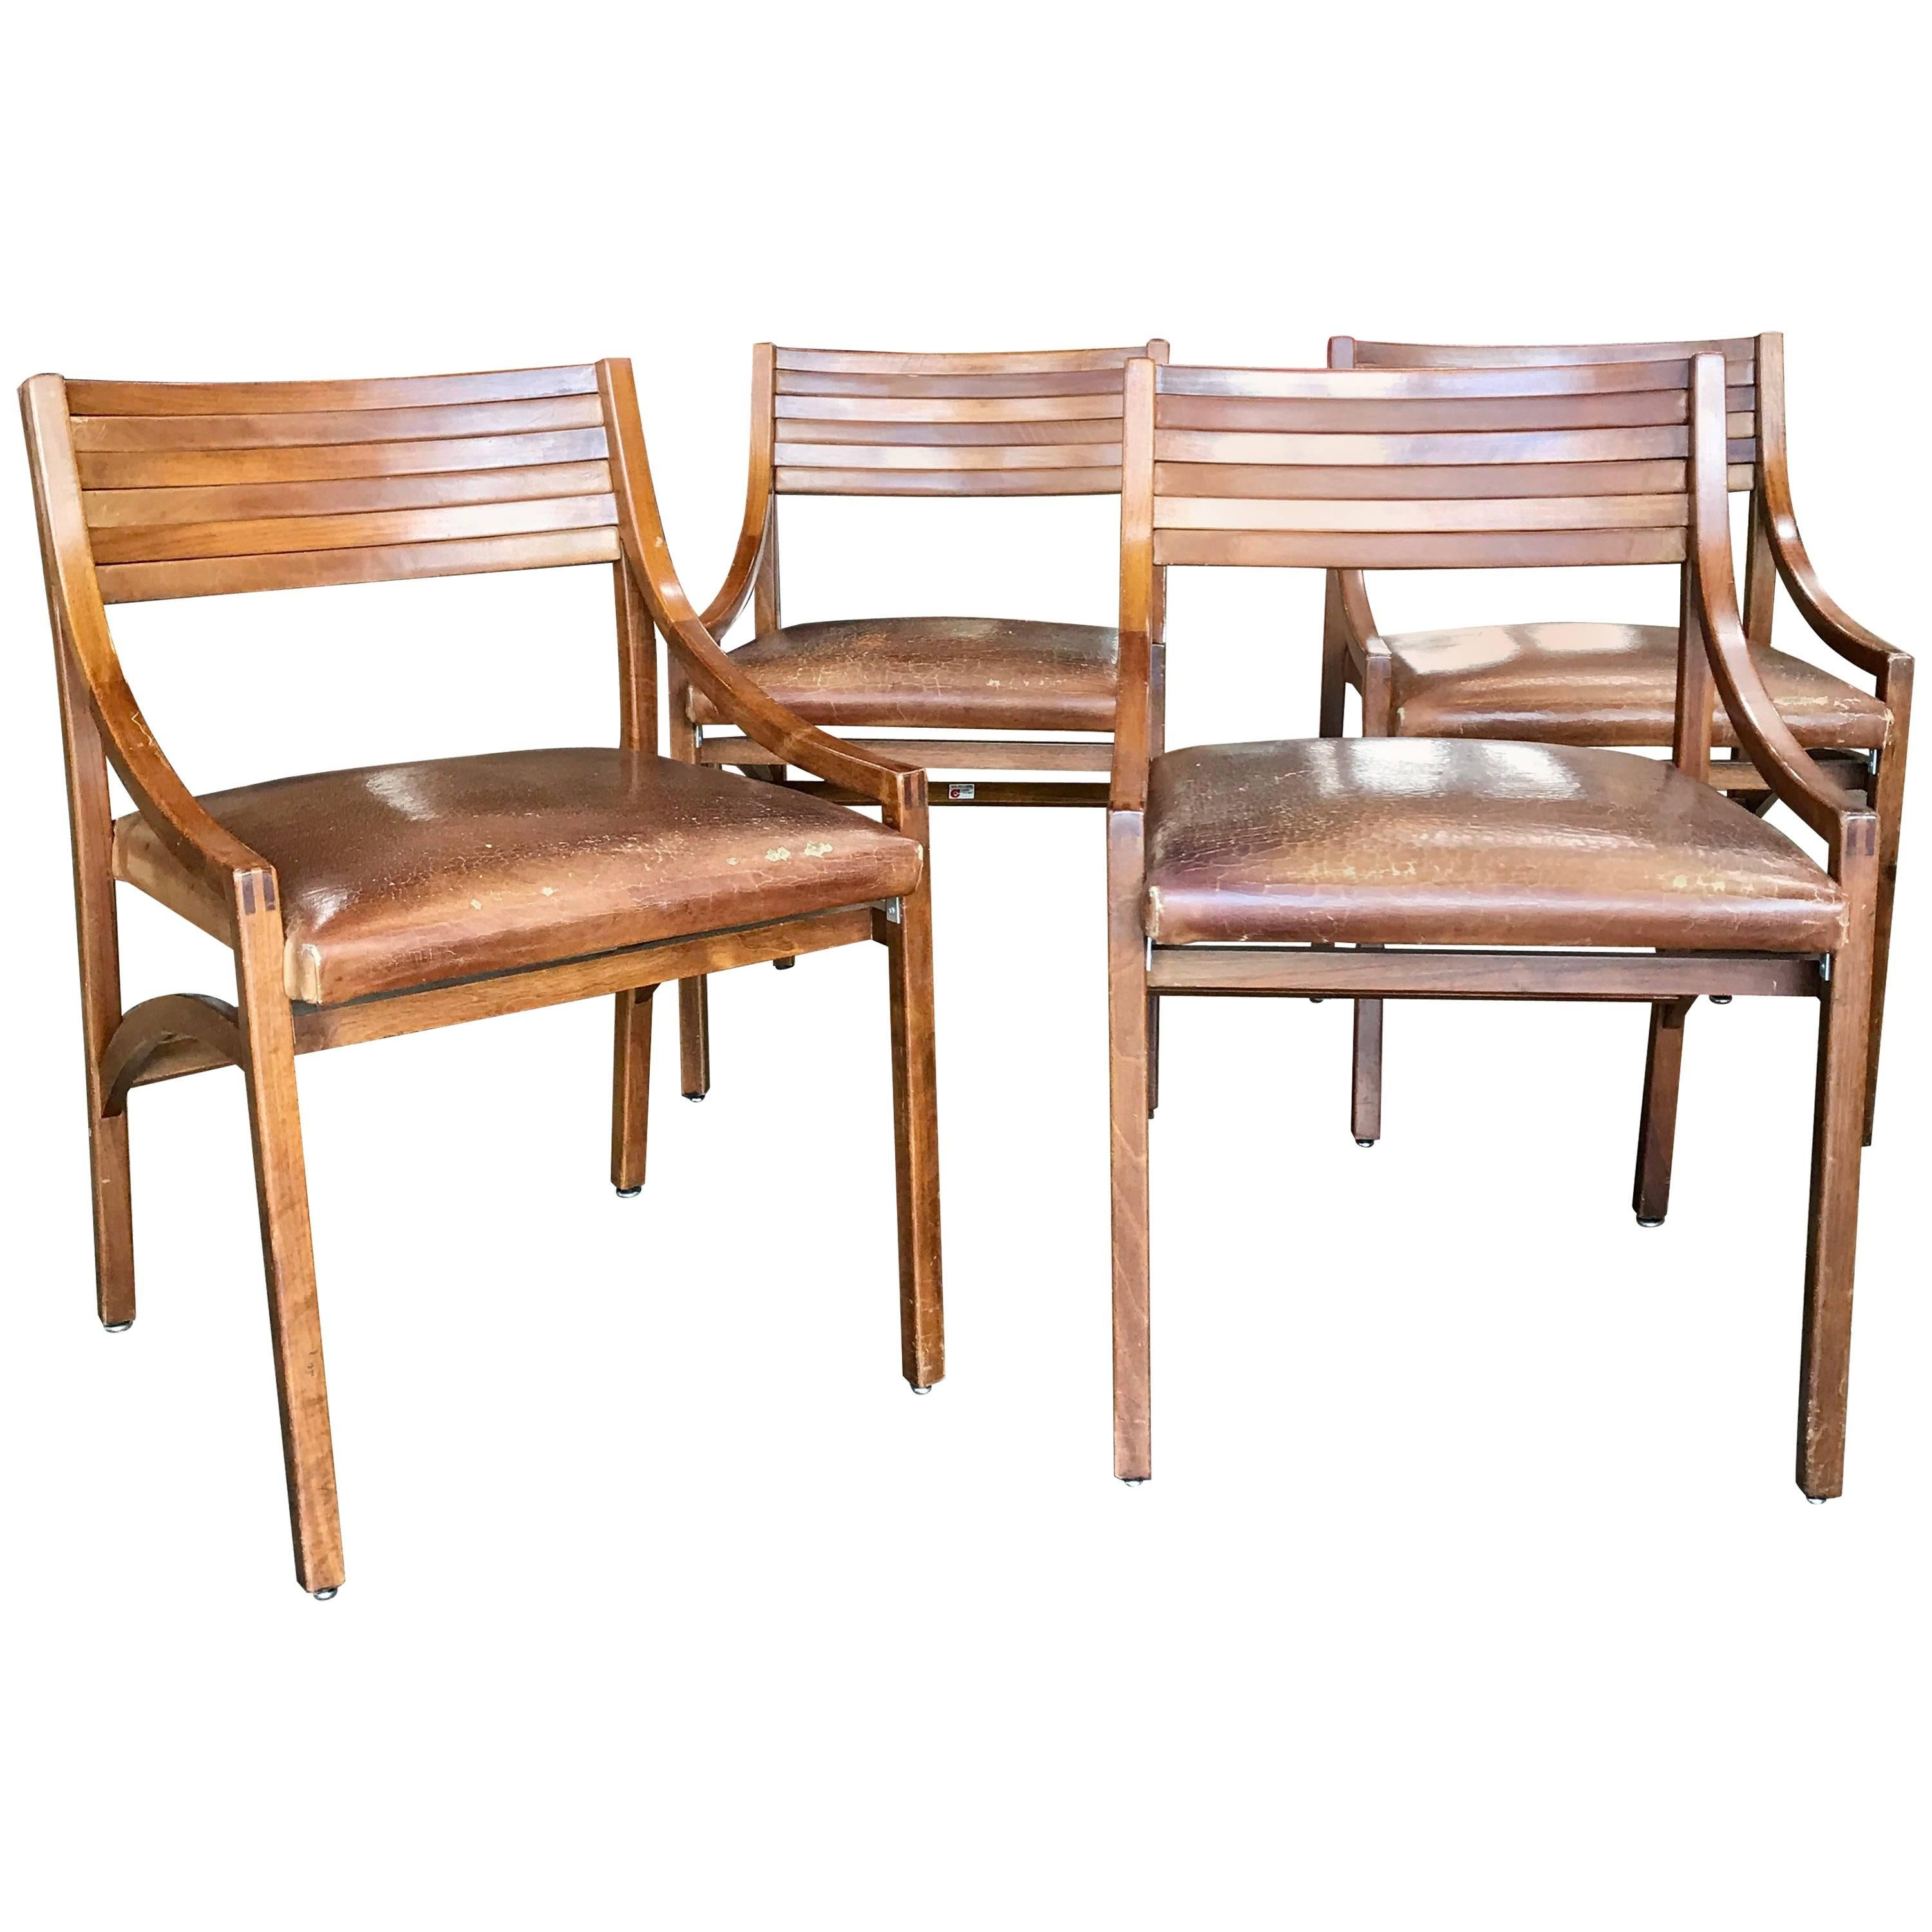 Ico Parisi Mod 110, Italian Walnut and Leather Dining Chairs 1959